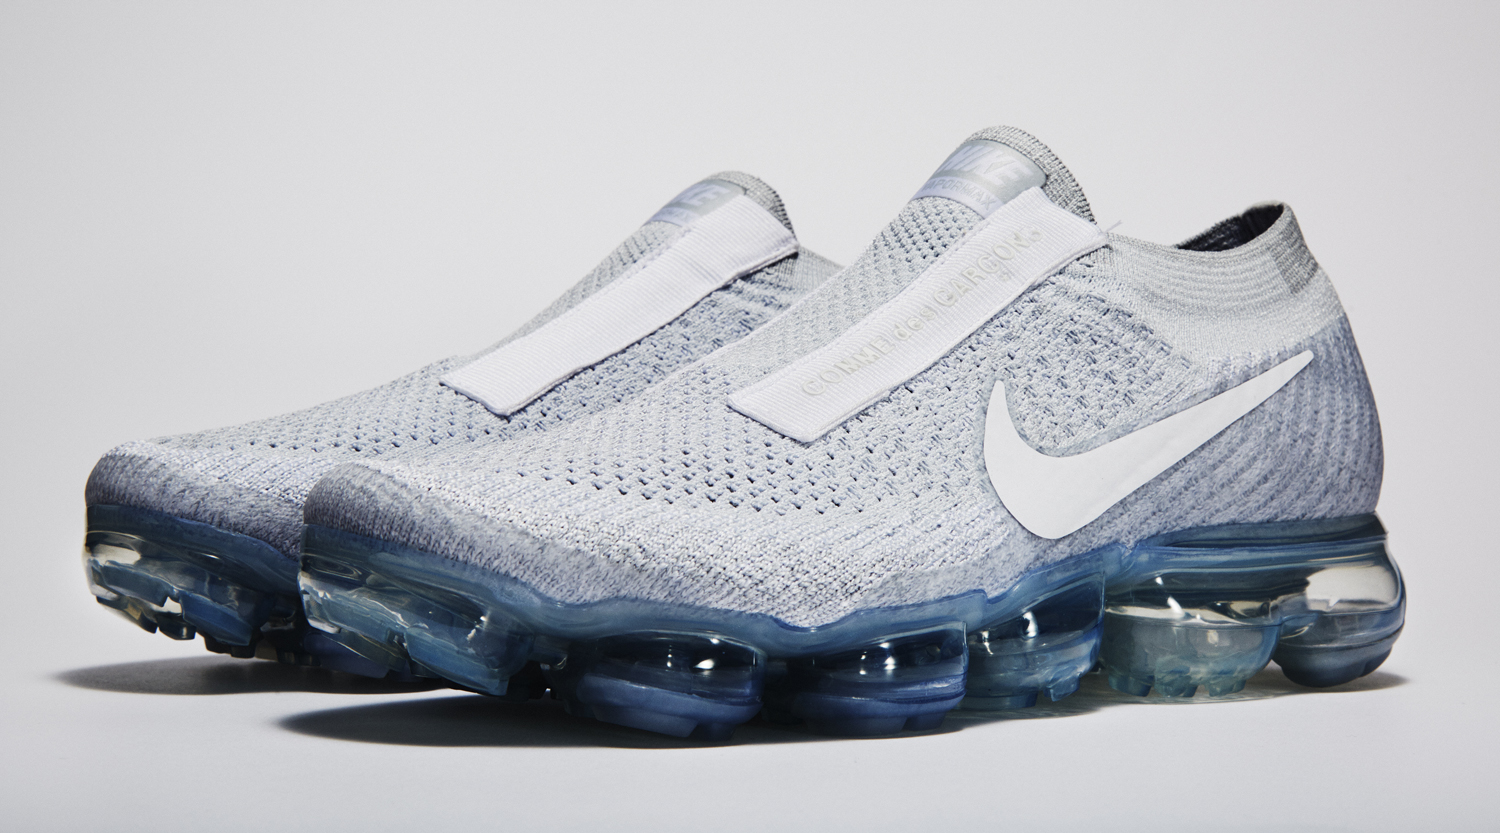 reputable site 437ac 562a7 White Nike Air VaporMax Comme des Garcons